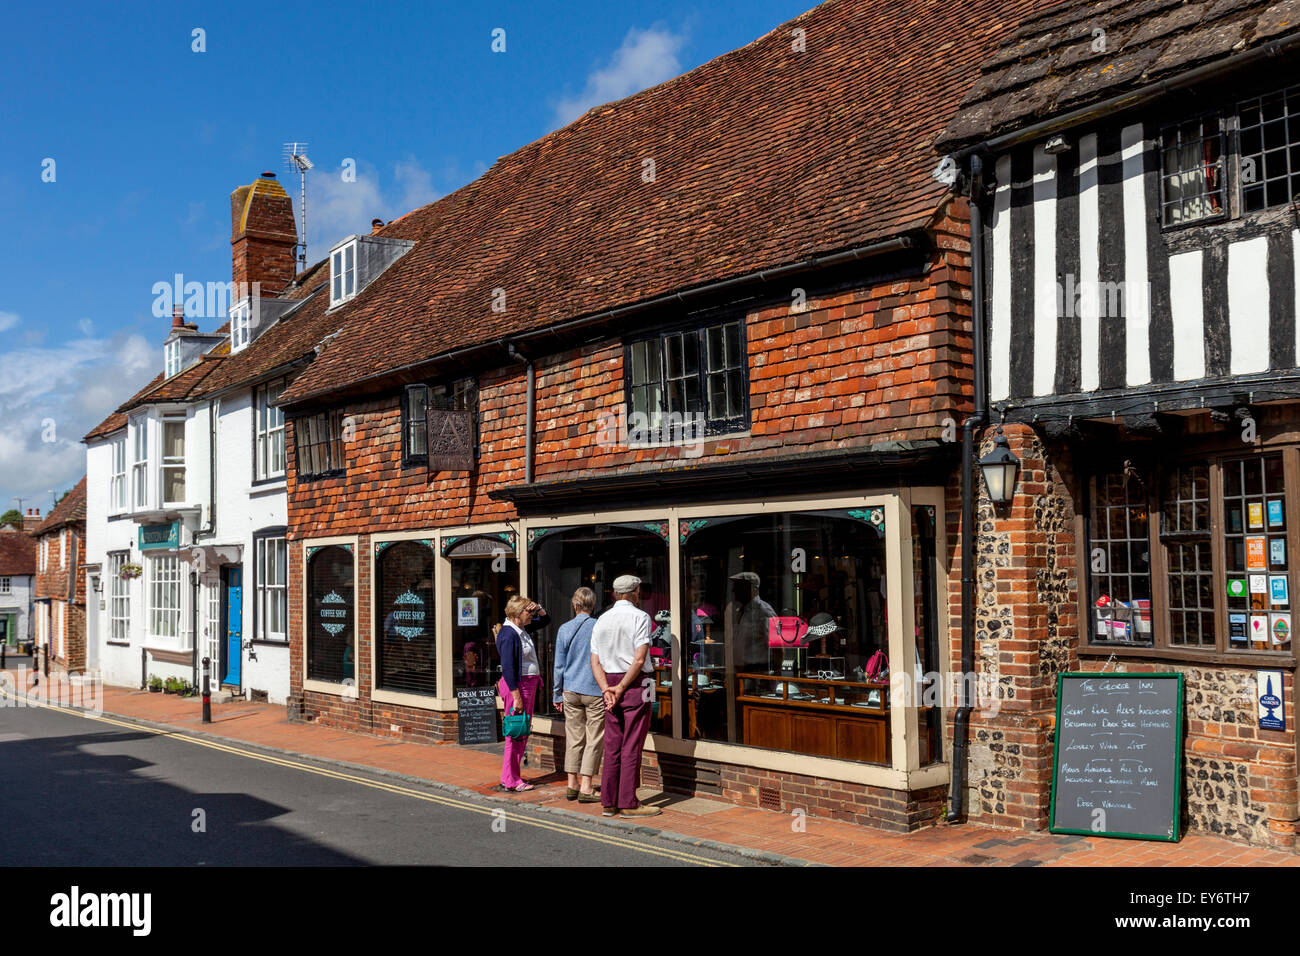 Visitors Looking At The Apiary Clothes & Coffee Shop,  Alfriston, Sussex, UK - Stock Image